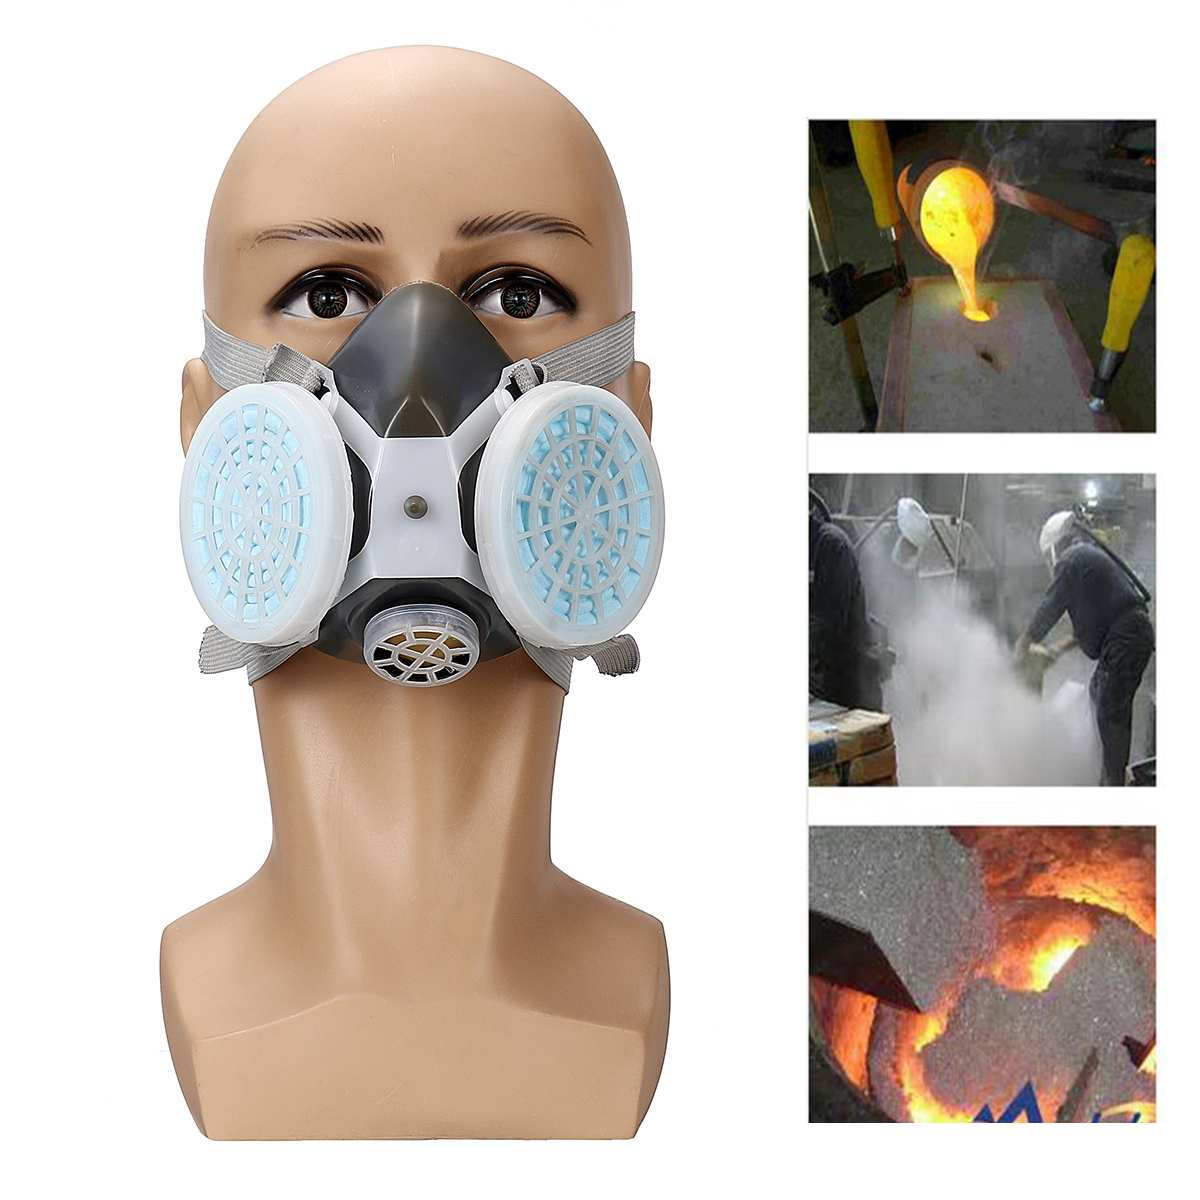 Workplace Safety Supplies Masks 90 Percent Filter Industry Respirator Disposable Non-woven Protective Anti Fog Dust Pm2.5 Mask Hot Sale 2019